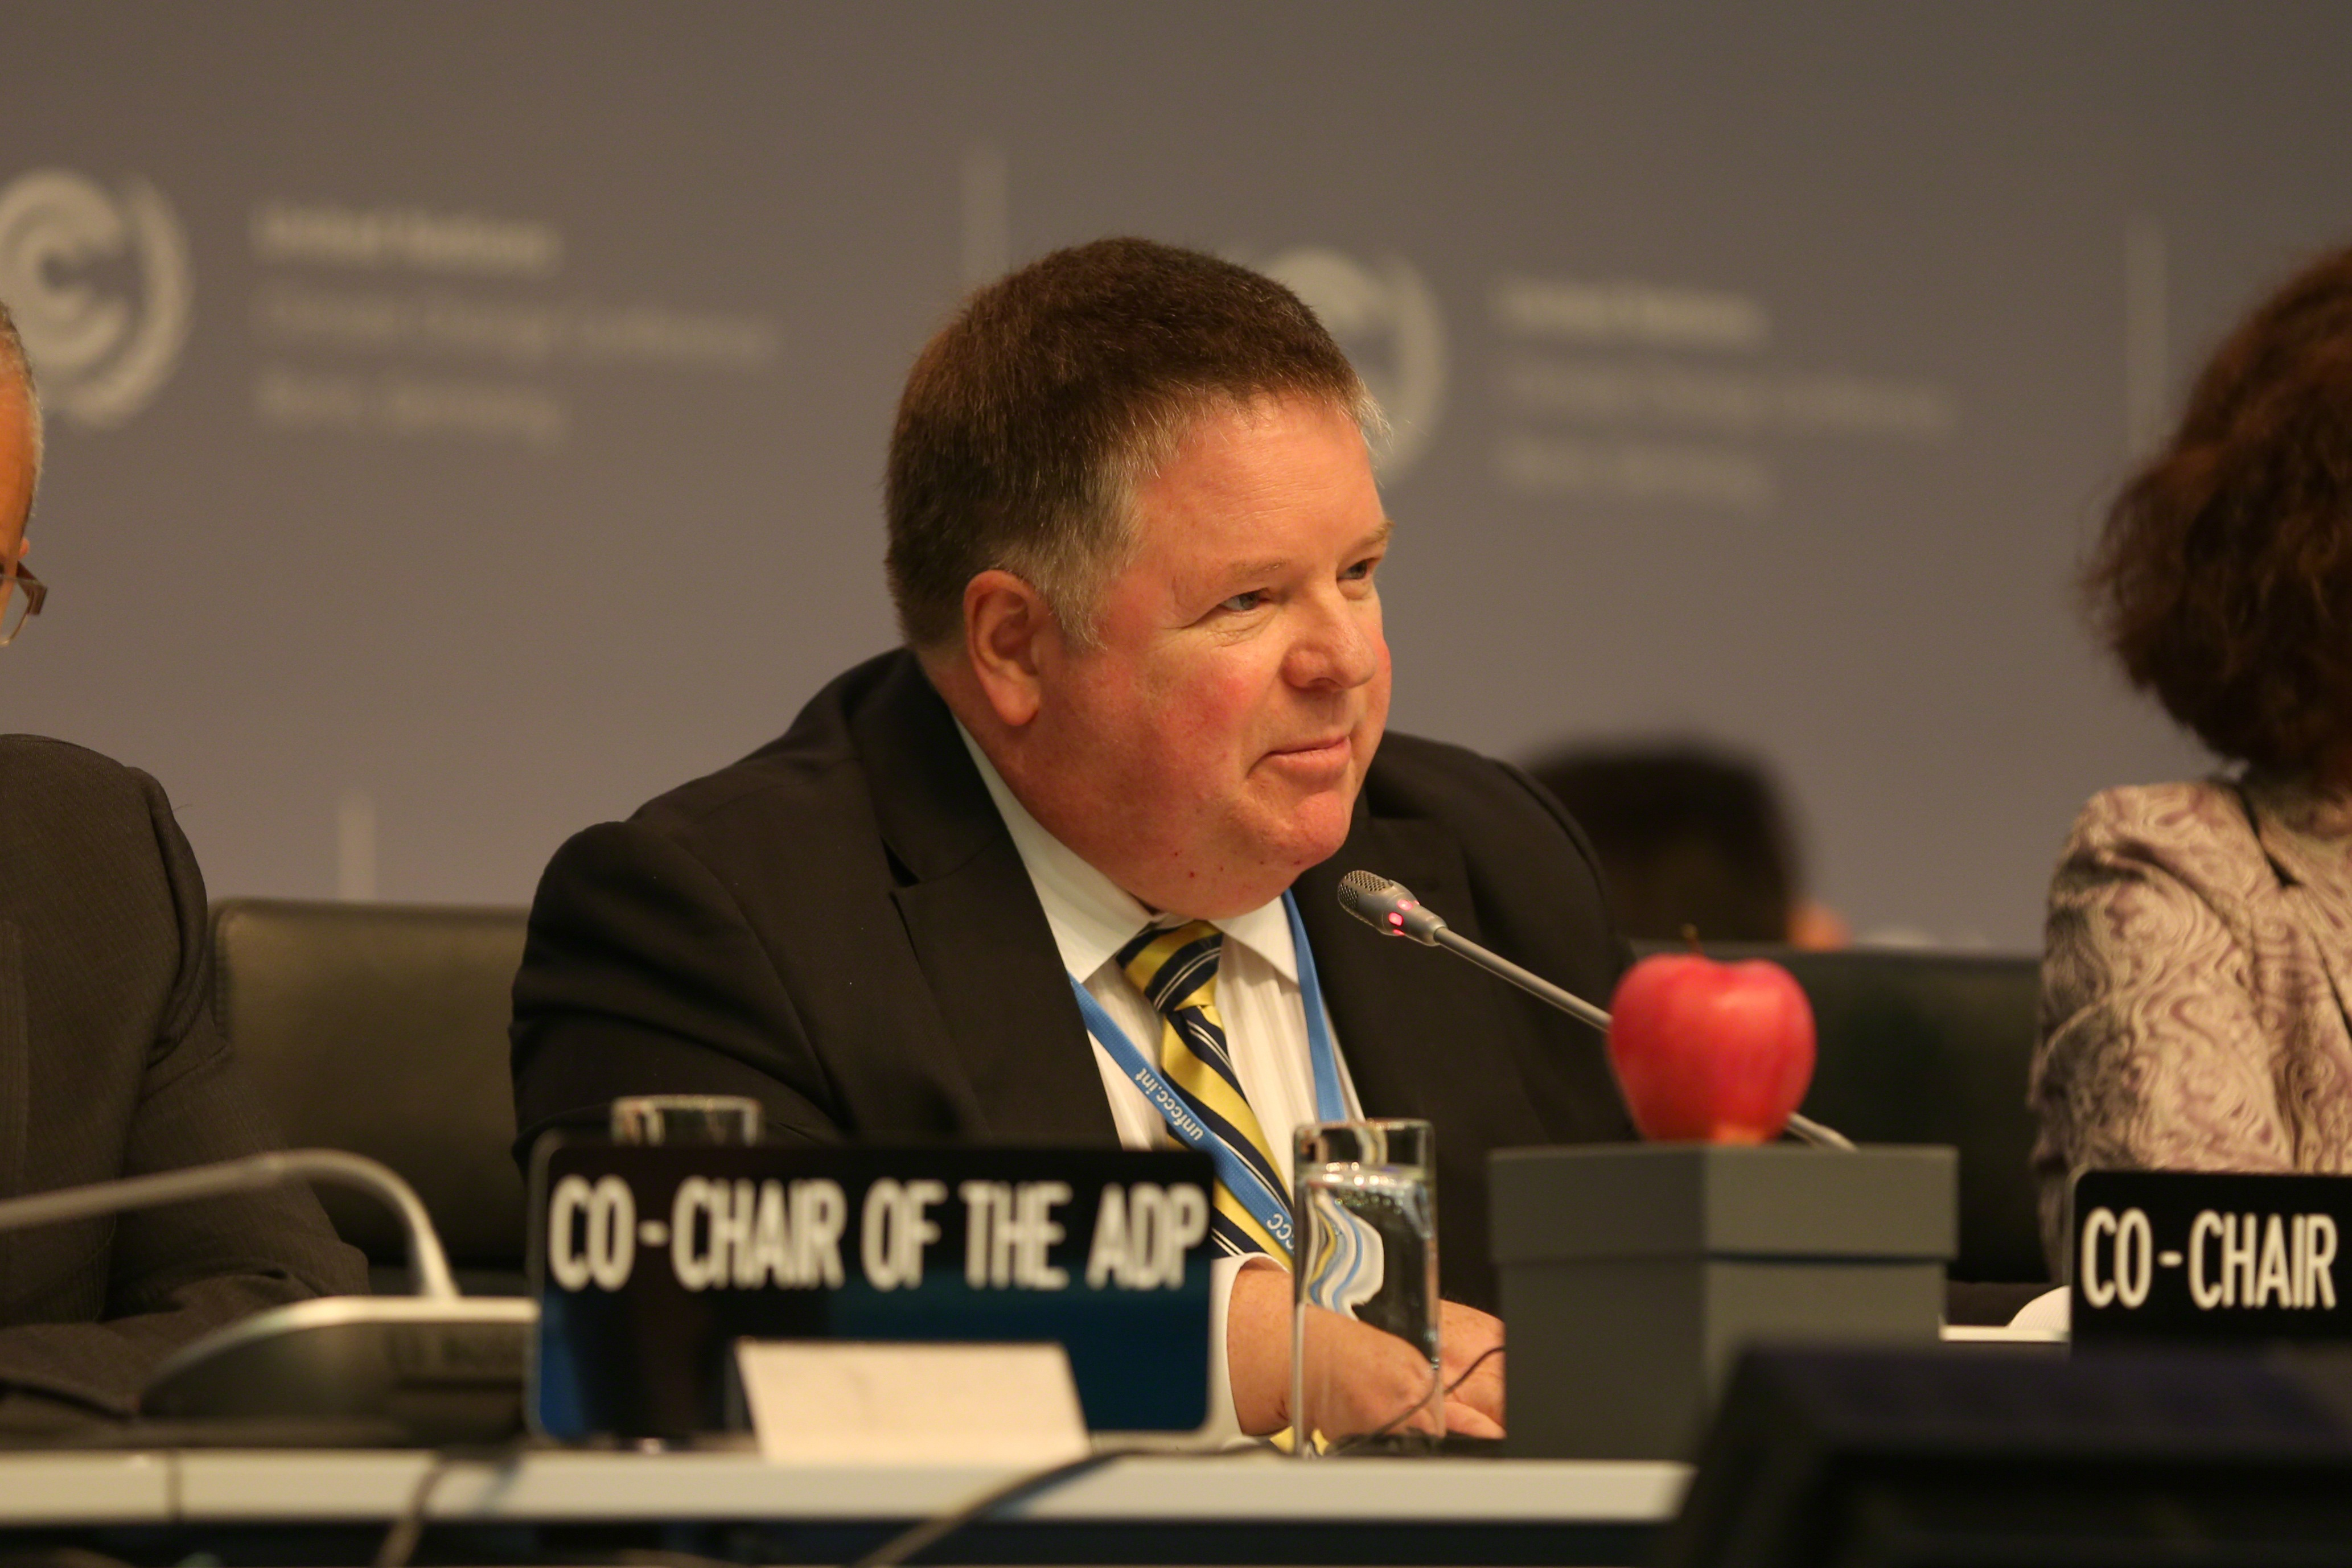 Co-Chair Daniel Reifsnyder hopes that the groups make much more progress in a bid to inspire action in others